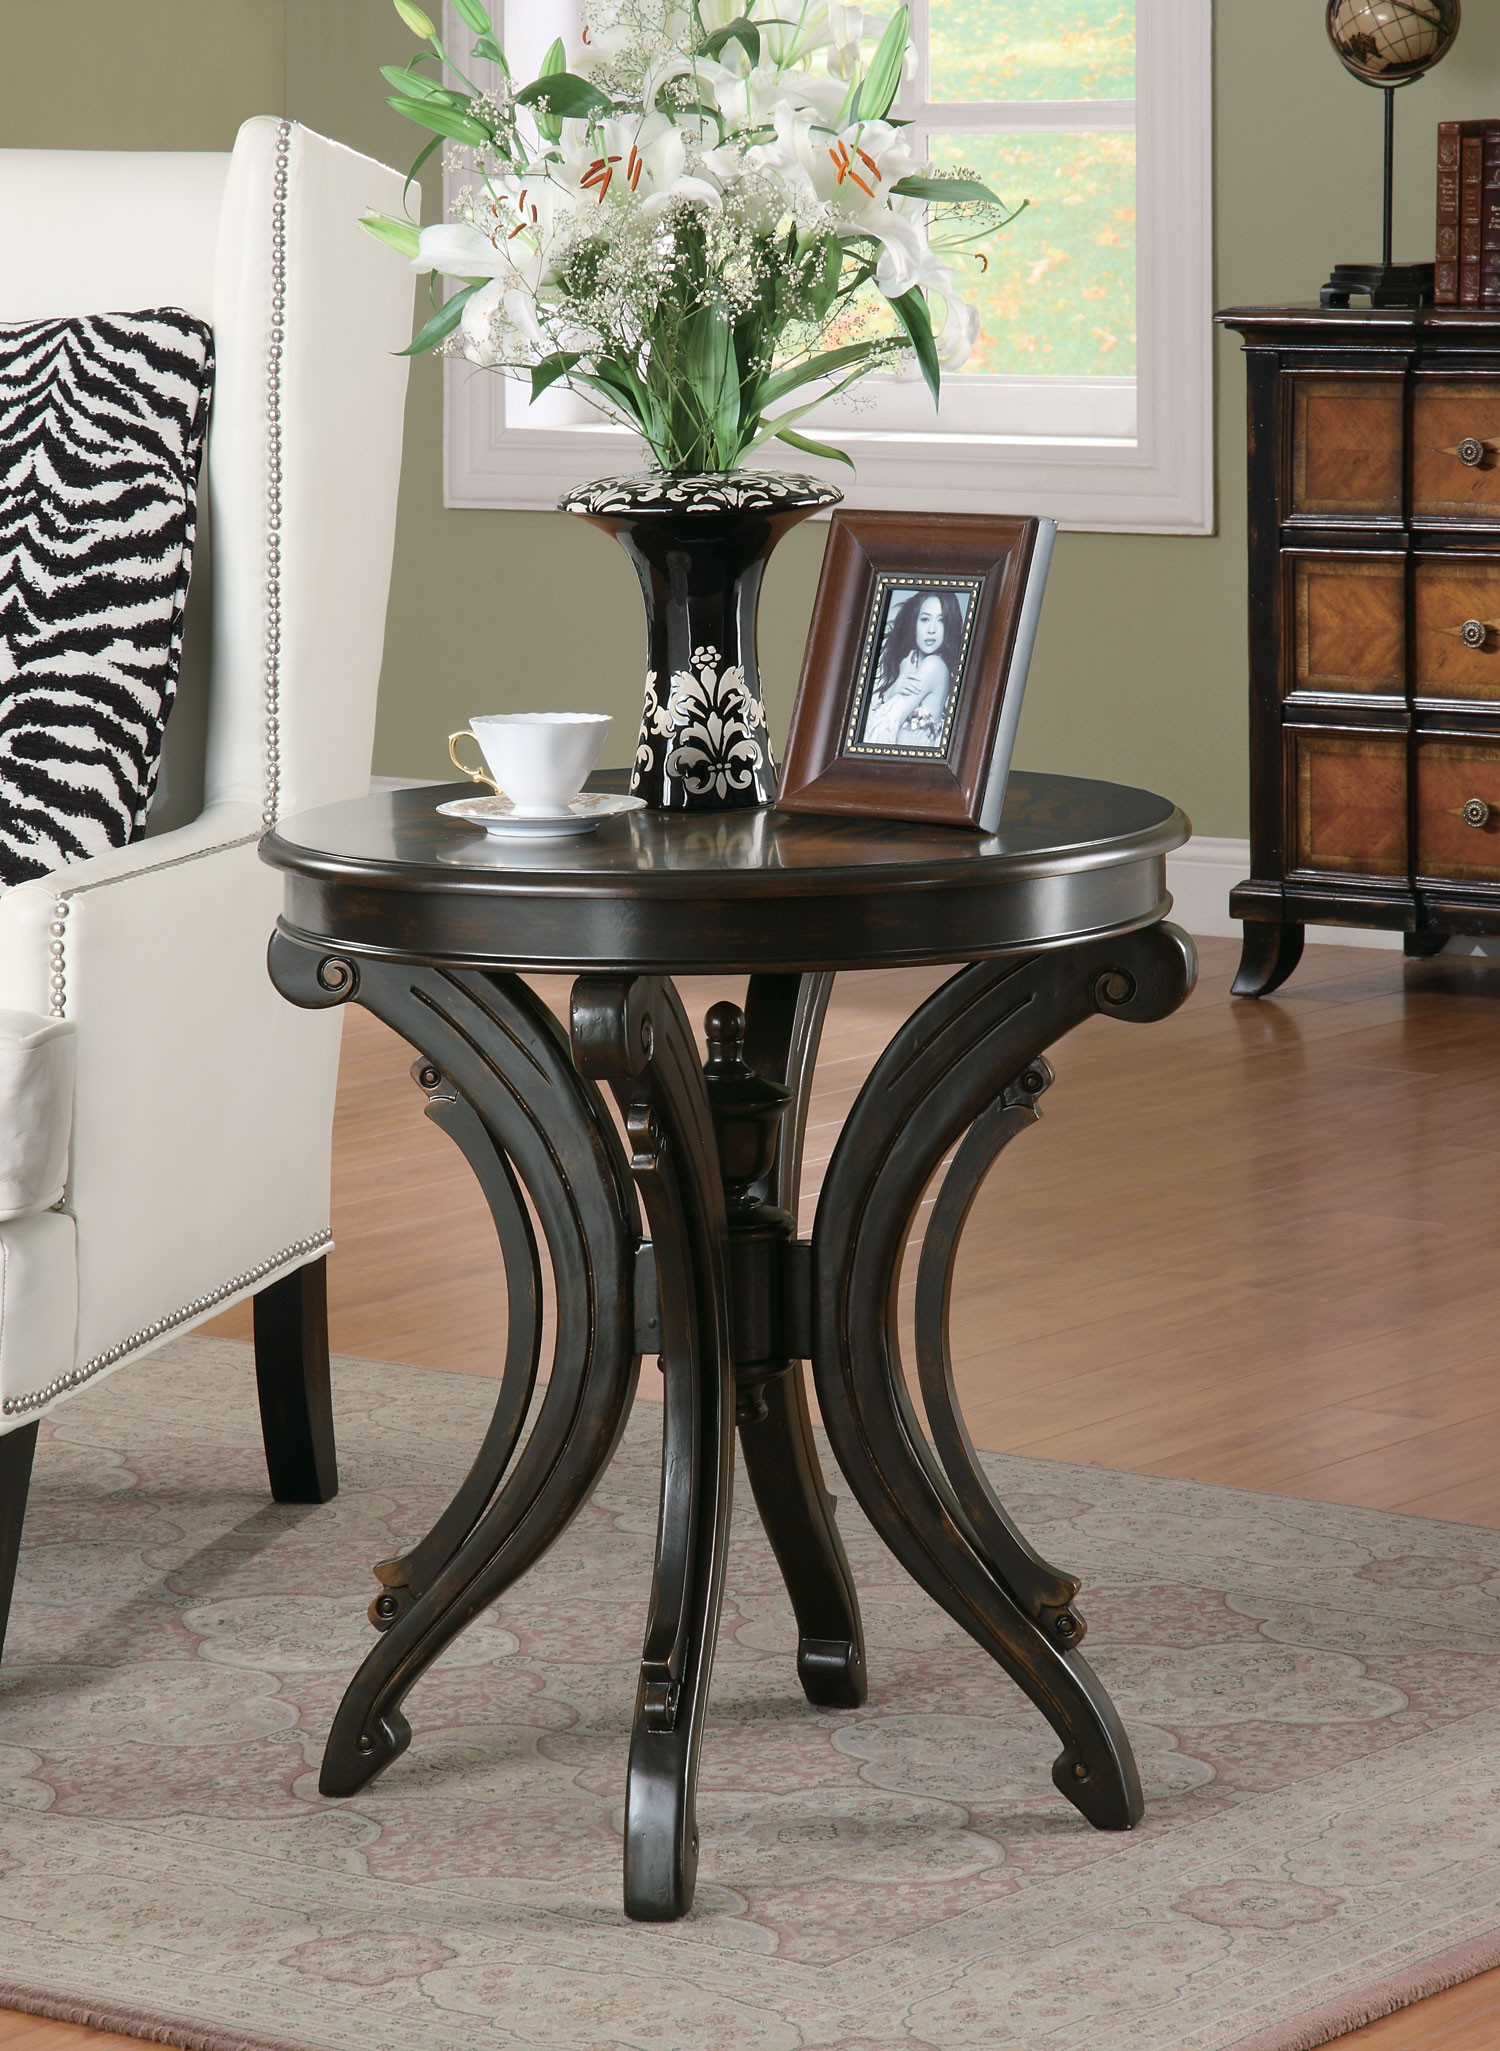 round end table with animal print alexander kat furniture zebra accent top scrolled base black counter height home goods kitchen inexpensive sofa tables storage cube coffee